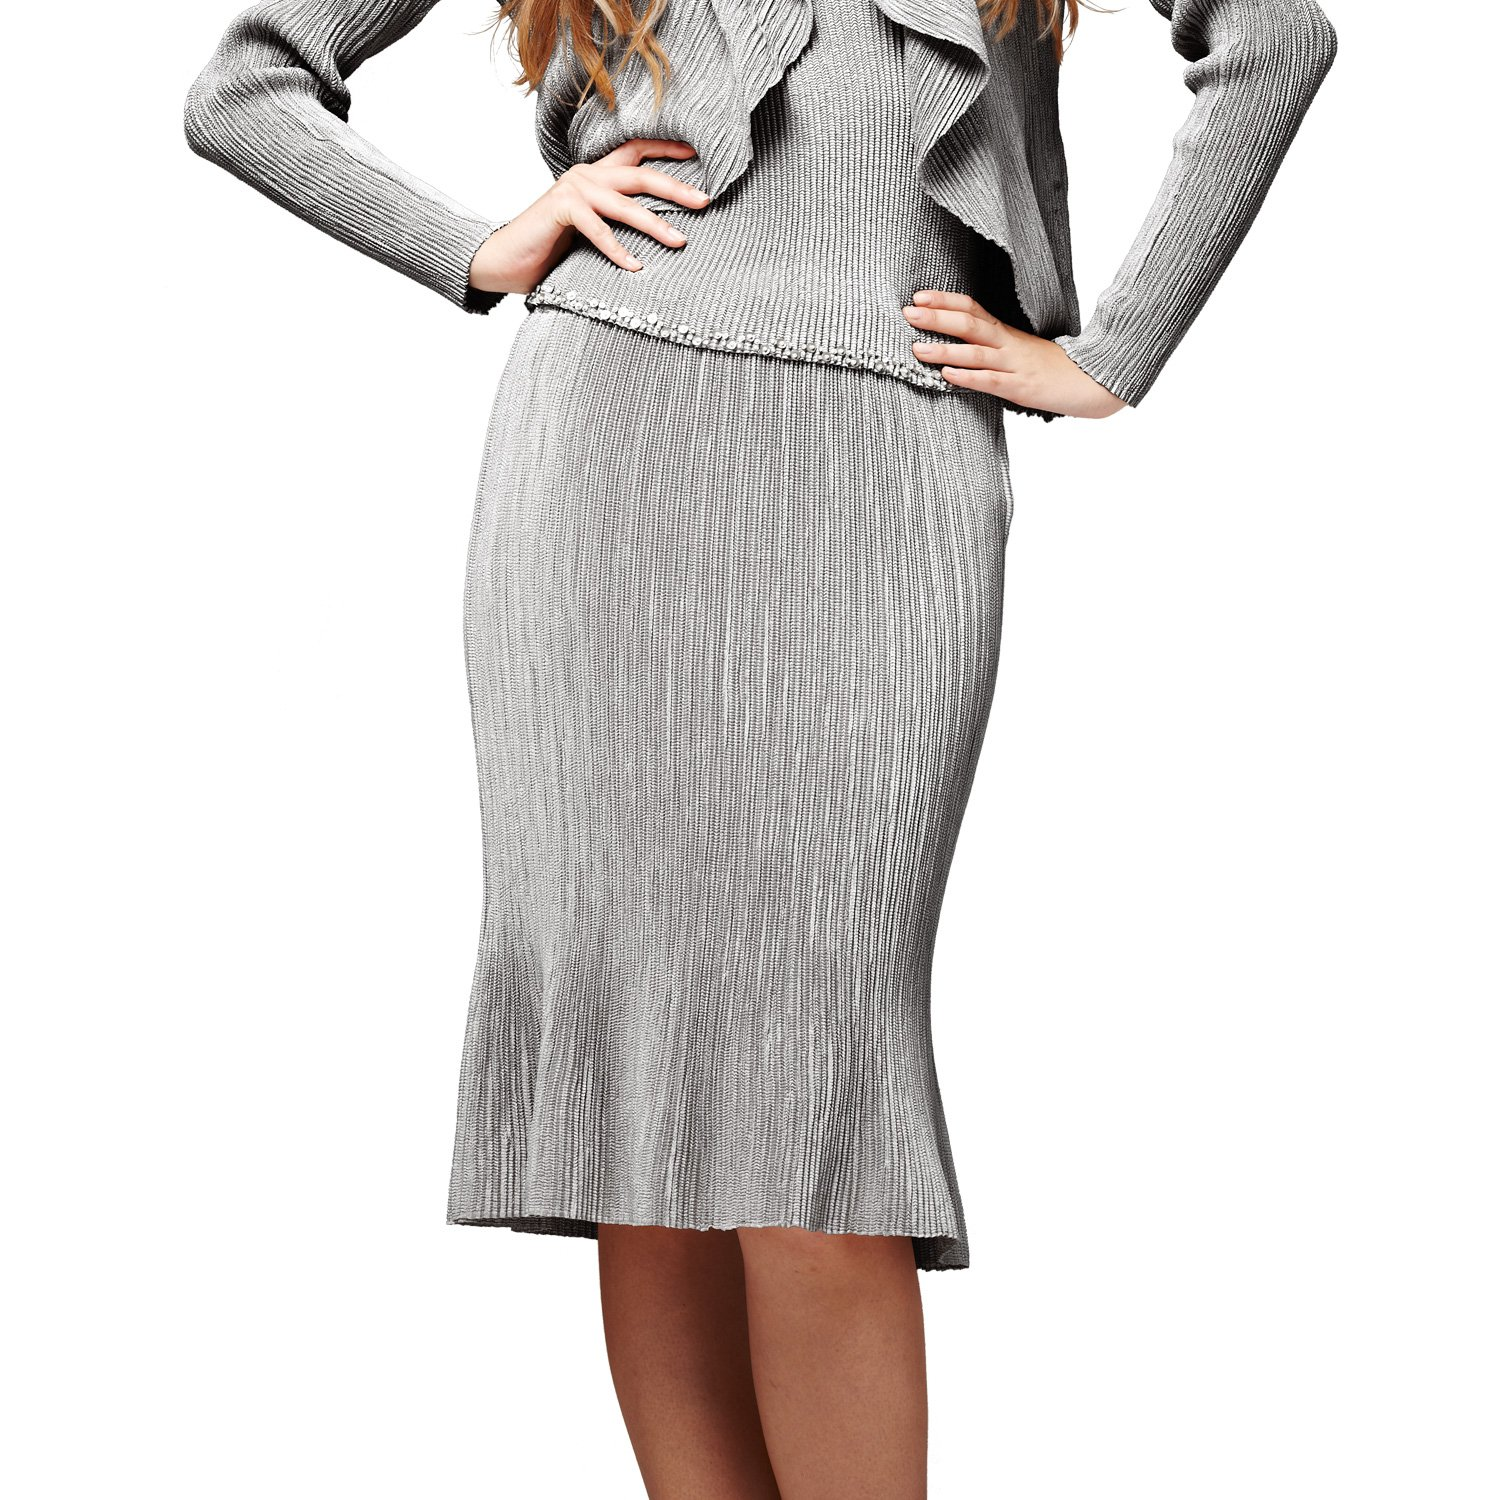 SPECCHIO PLEATS Women's Flared Pleated Skirt One size Grey by SPECCHIO PLEATS